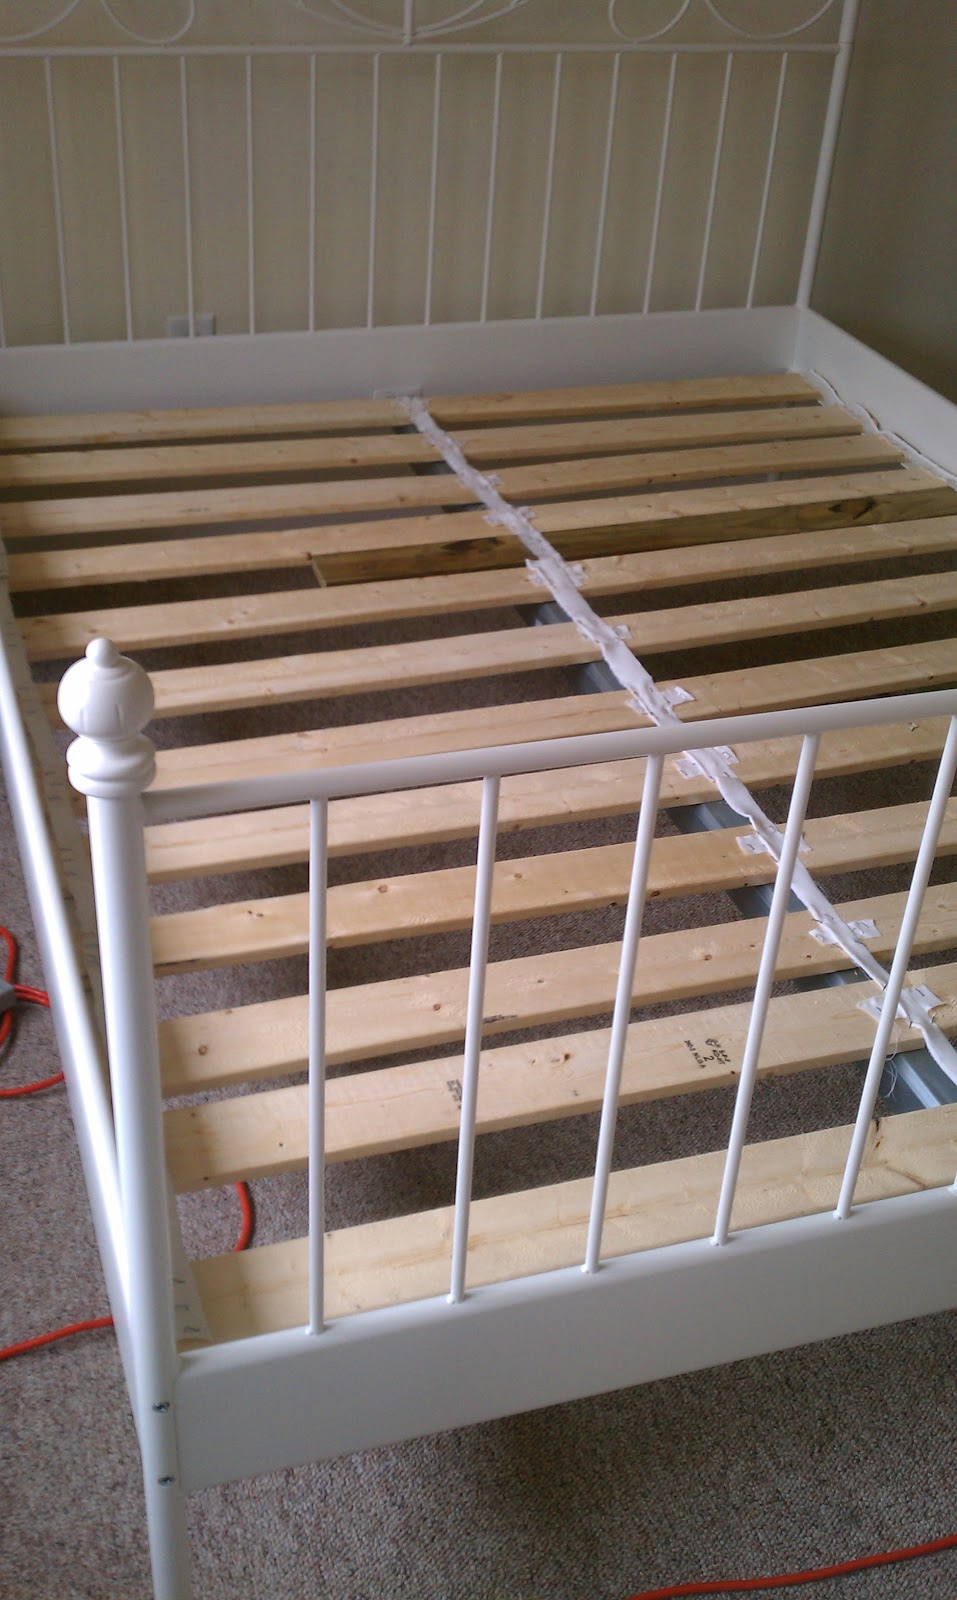 How Wide Is A Full Size Bed Slats